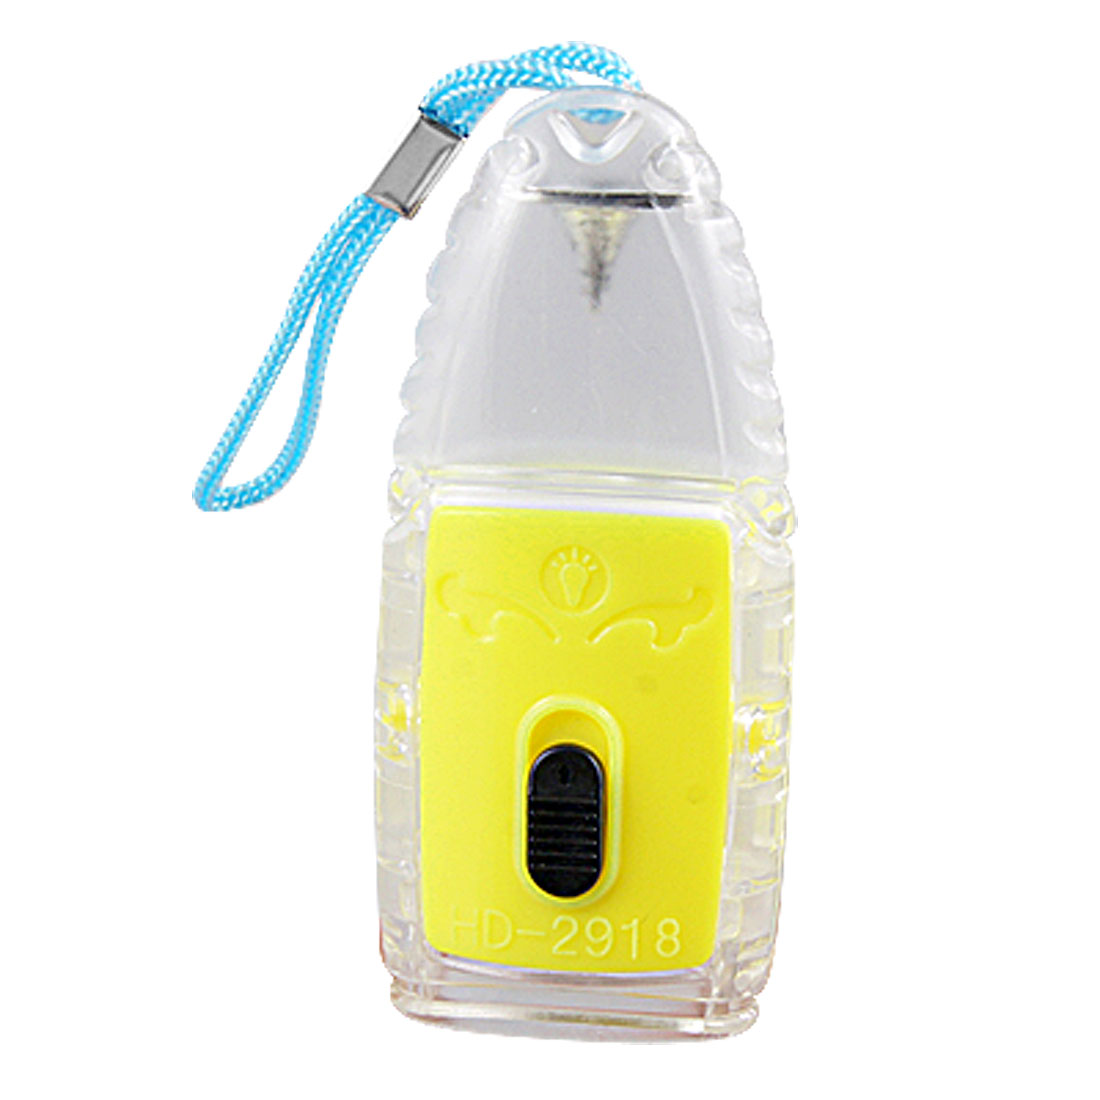 Yellow Rotatable Plastic Case 2 White LED Flashlight w Blue Strap